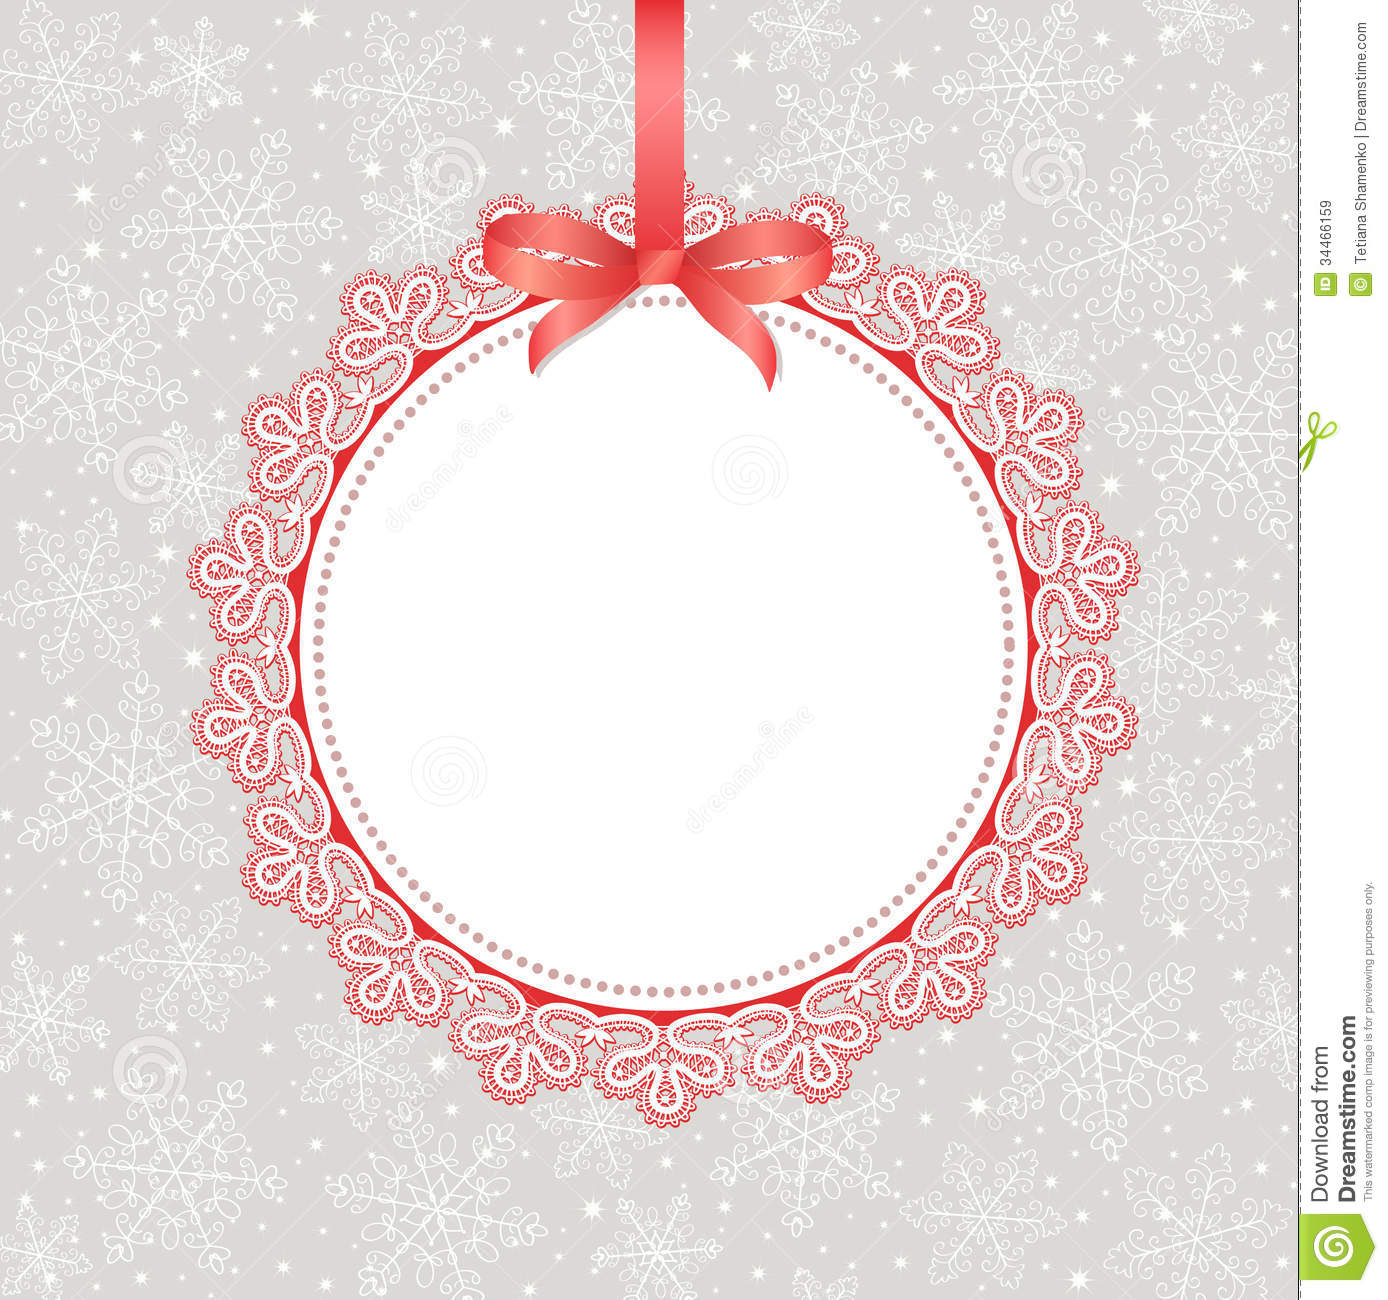 Christmas Card Design Online | Holliday Decorations